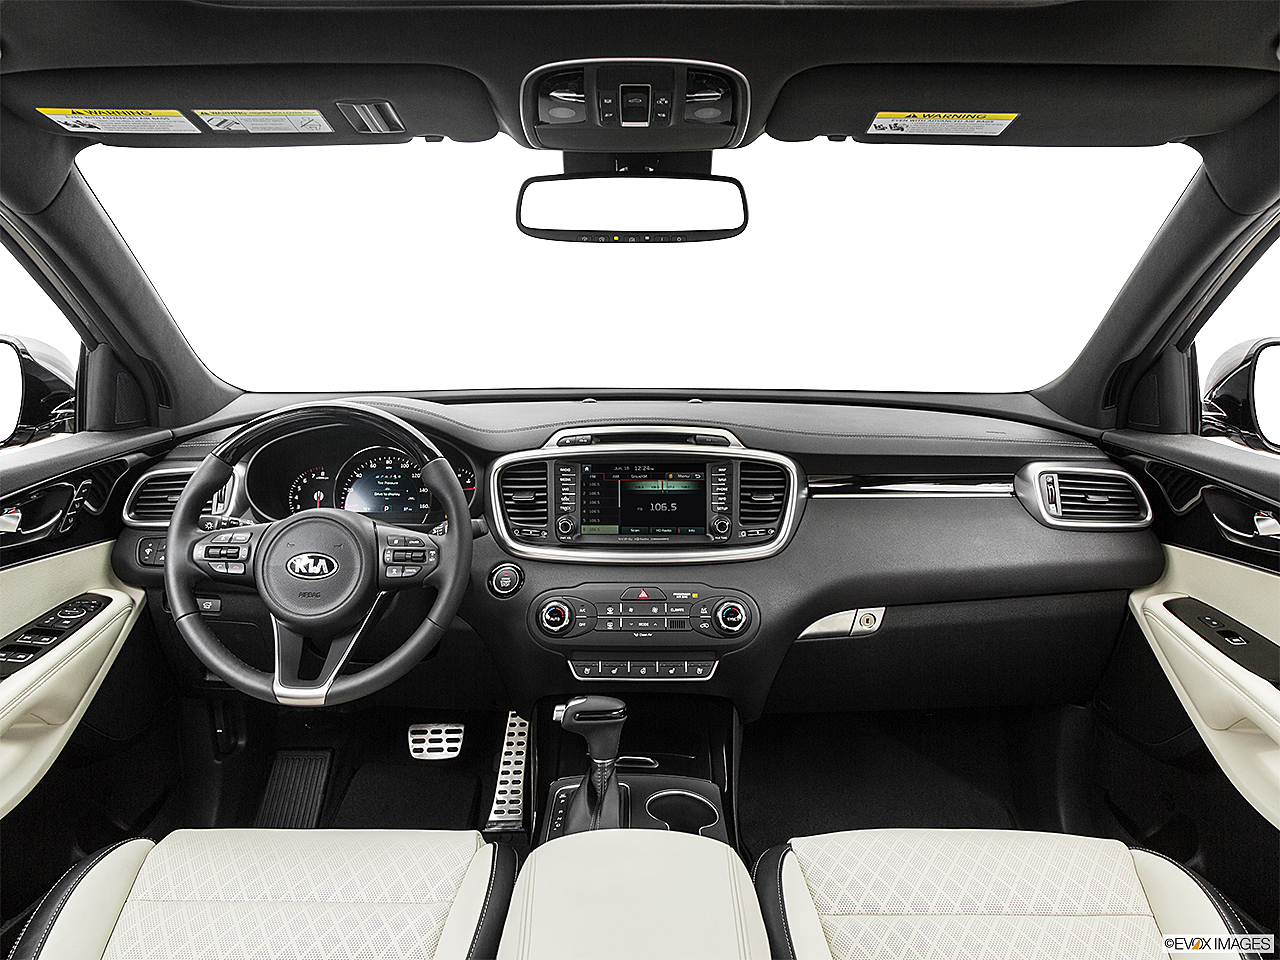 2017 Kia Sorento SX Limited, centered wide dash shot